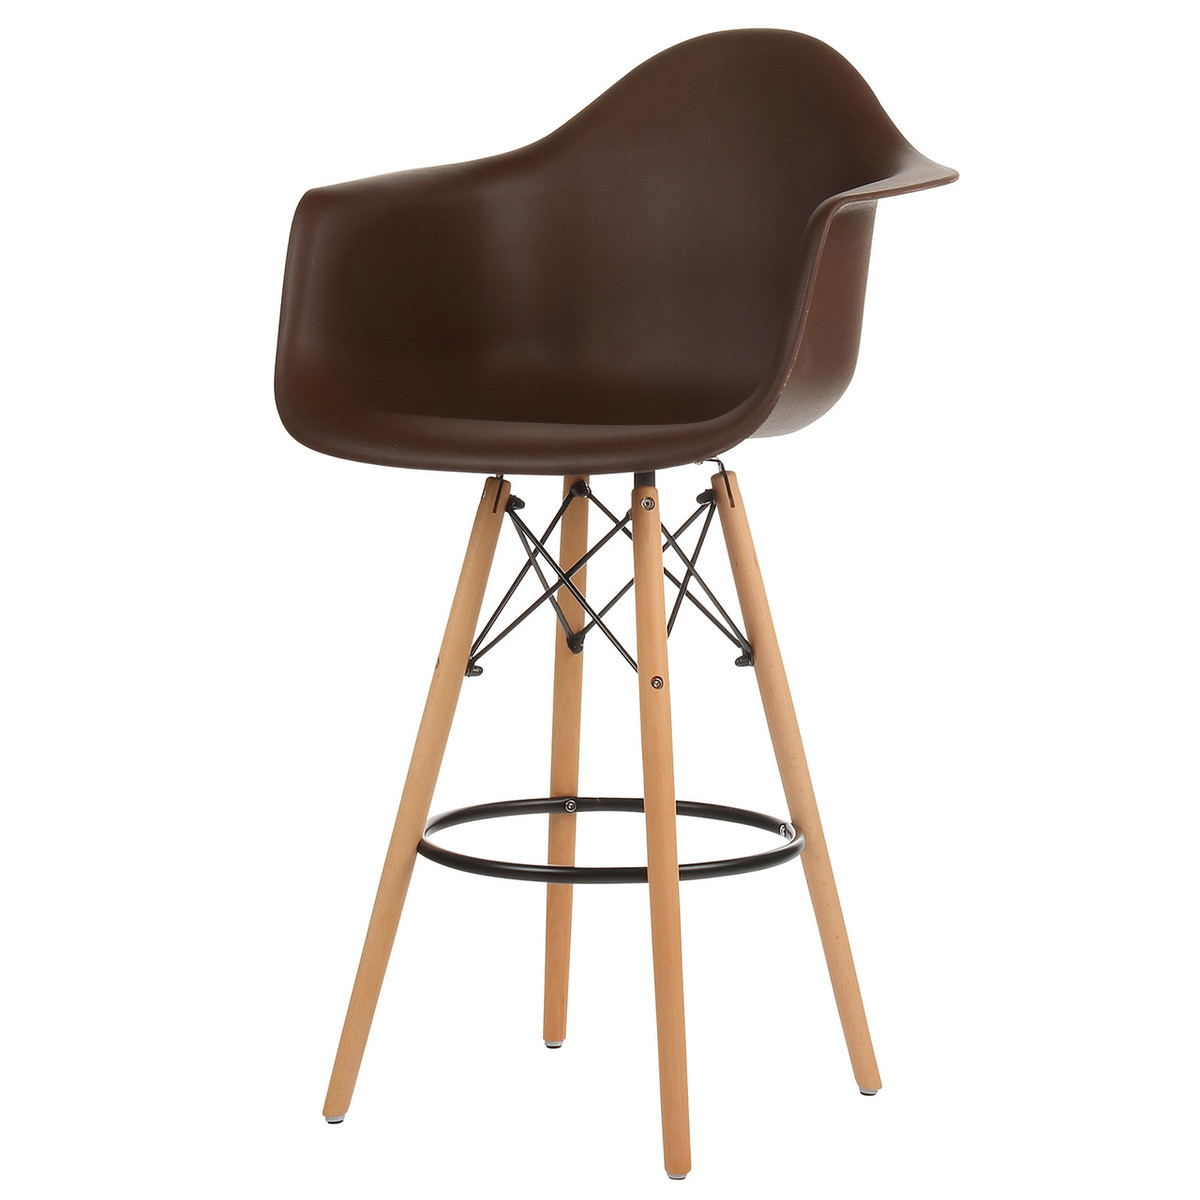 Cool Mid Century Modern Counter Stool With Arms Brown Squirreltailoven Fun Painted Chair Ideas Images Squirreltailovenorg